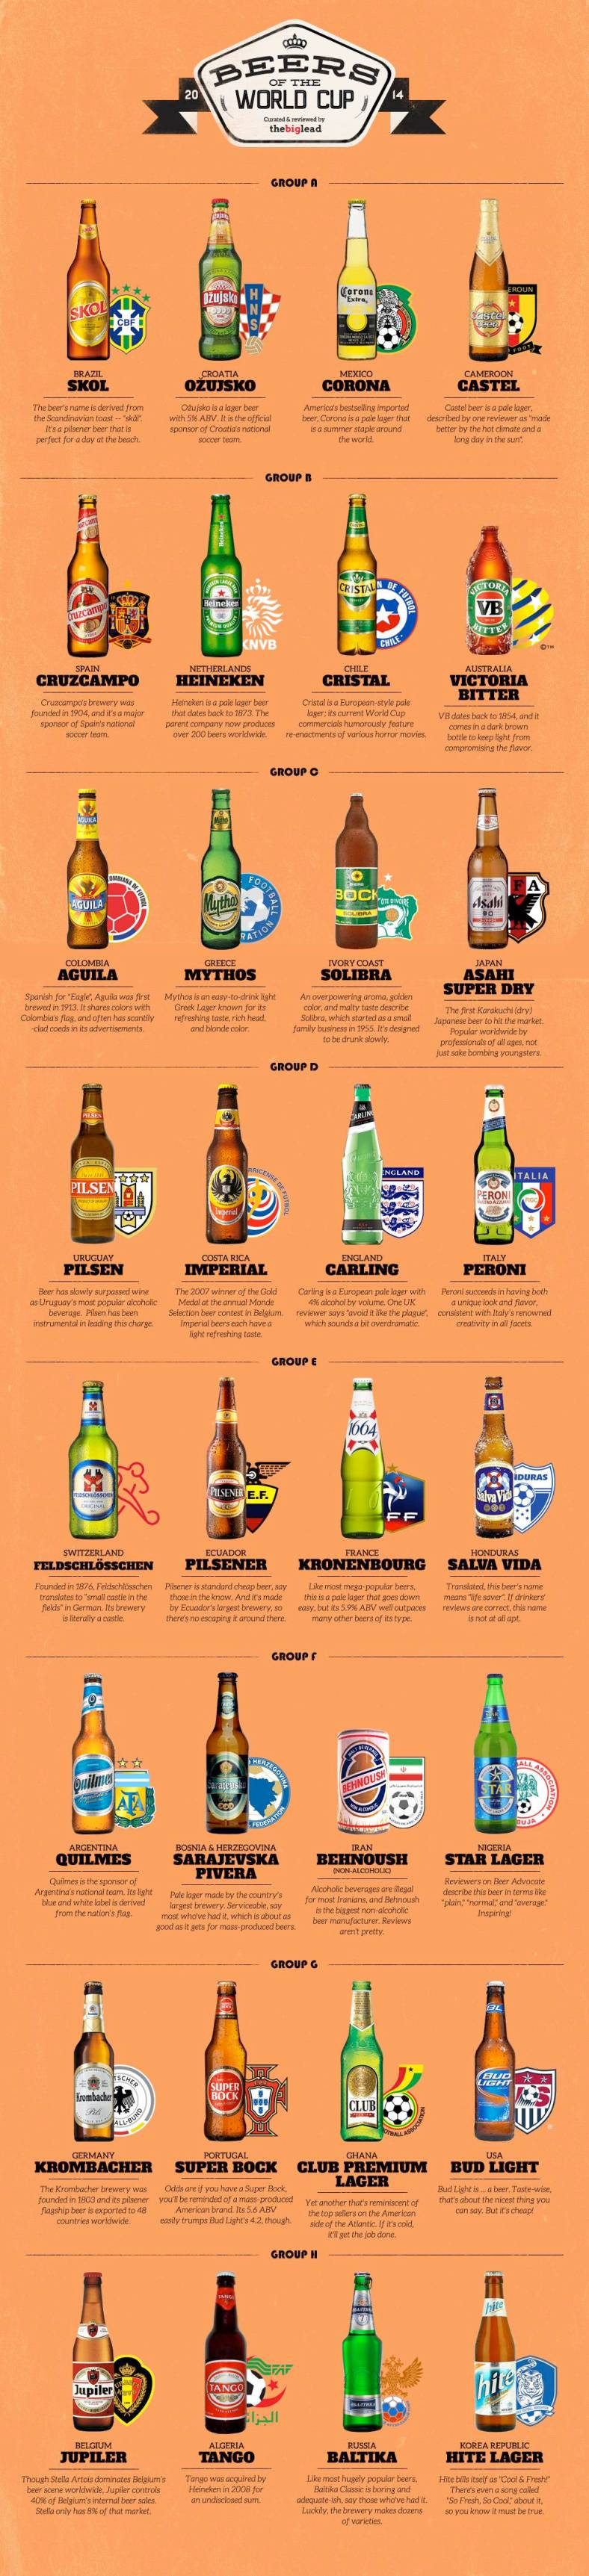 beer of the world cup